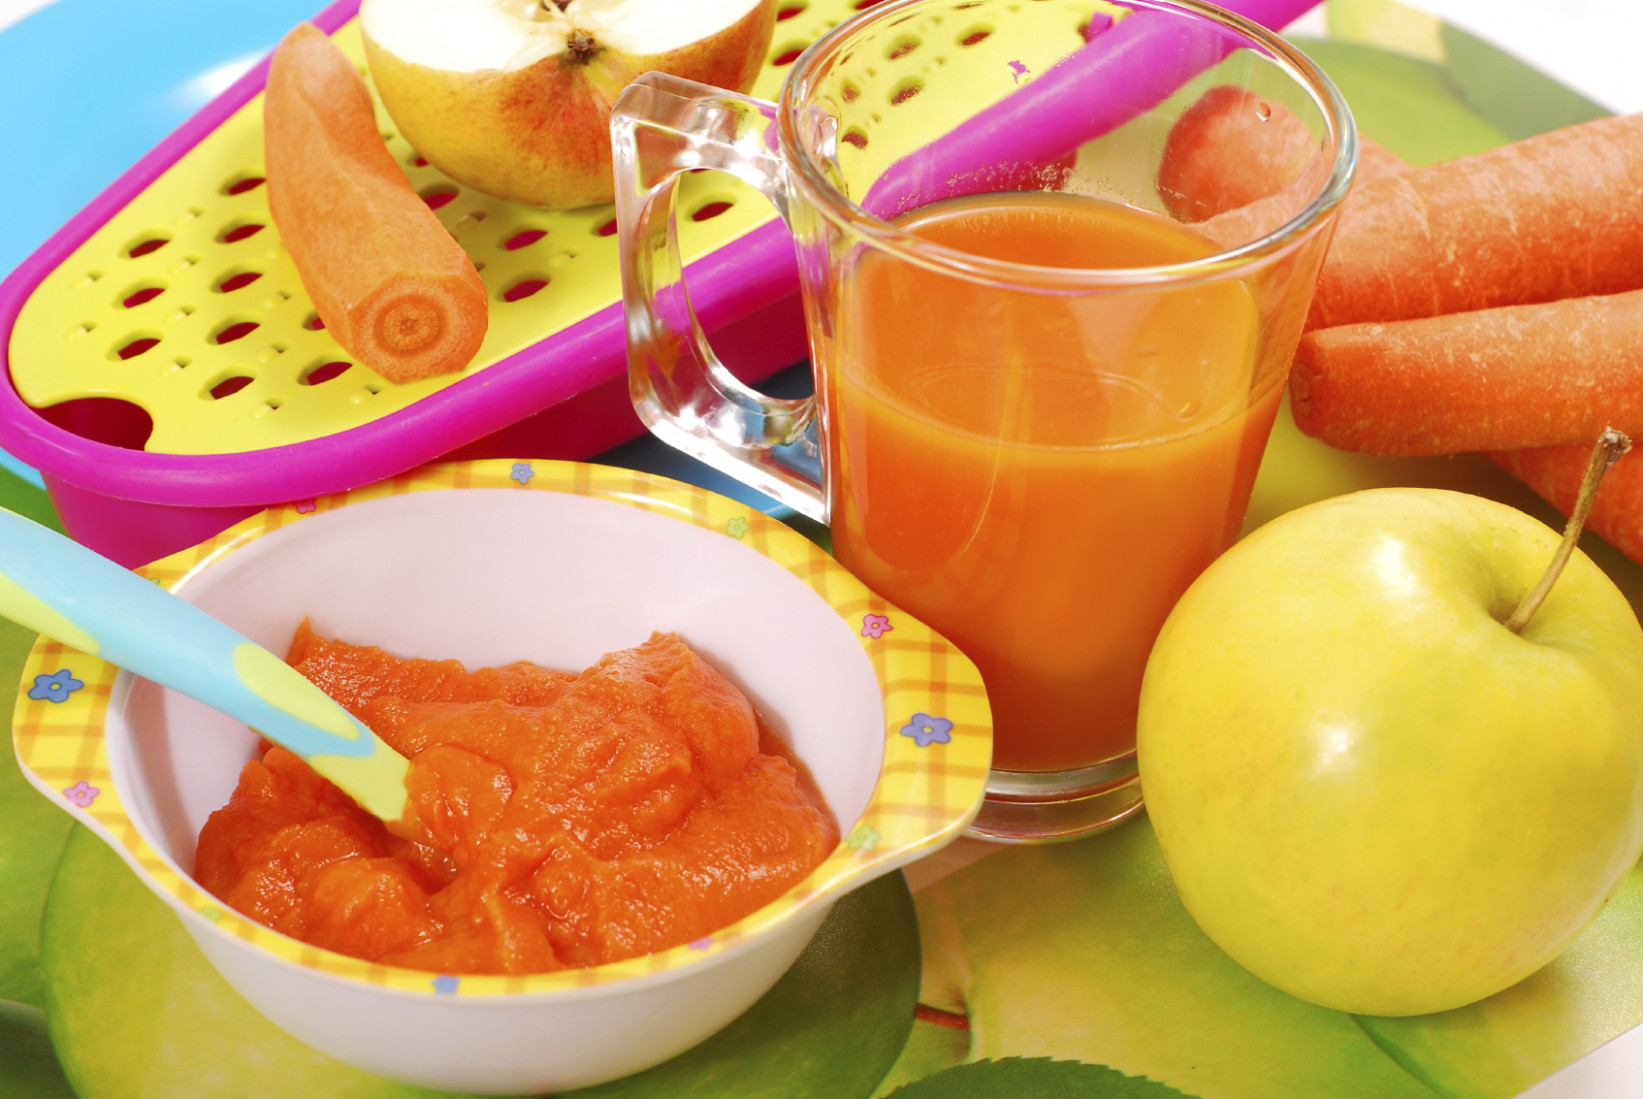 11 simple steps to fresh and nutritious homemade baby food ..